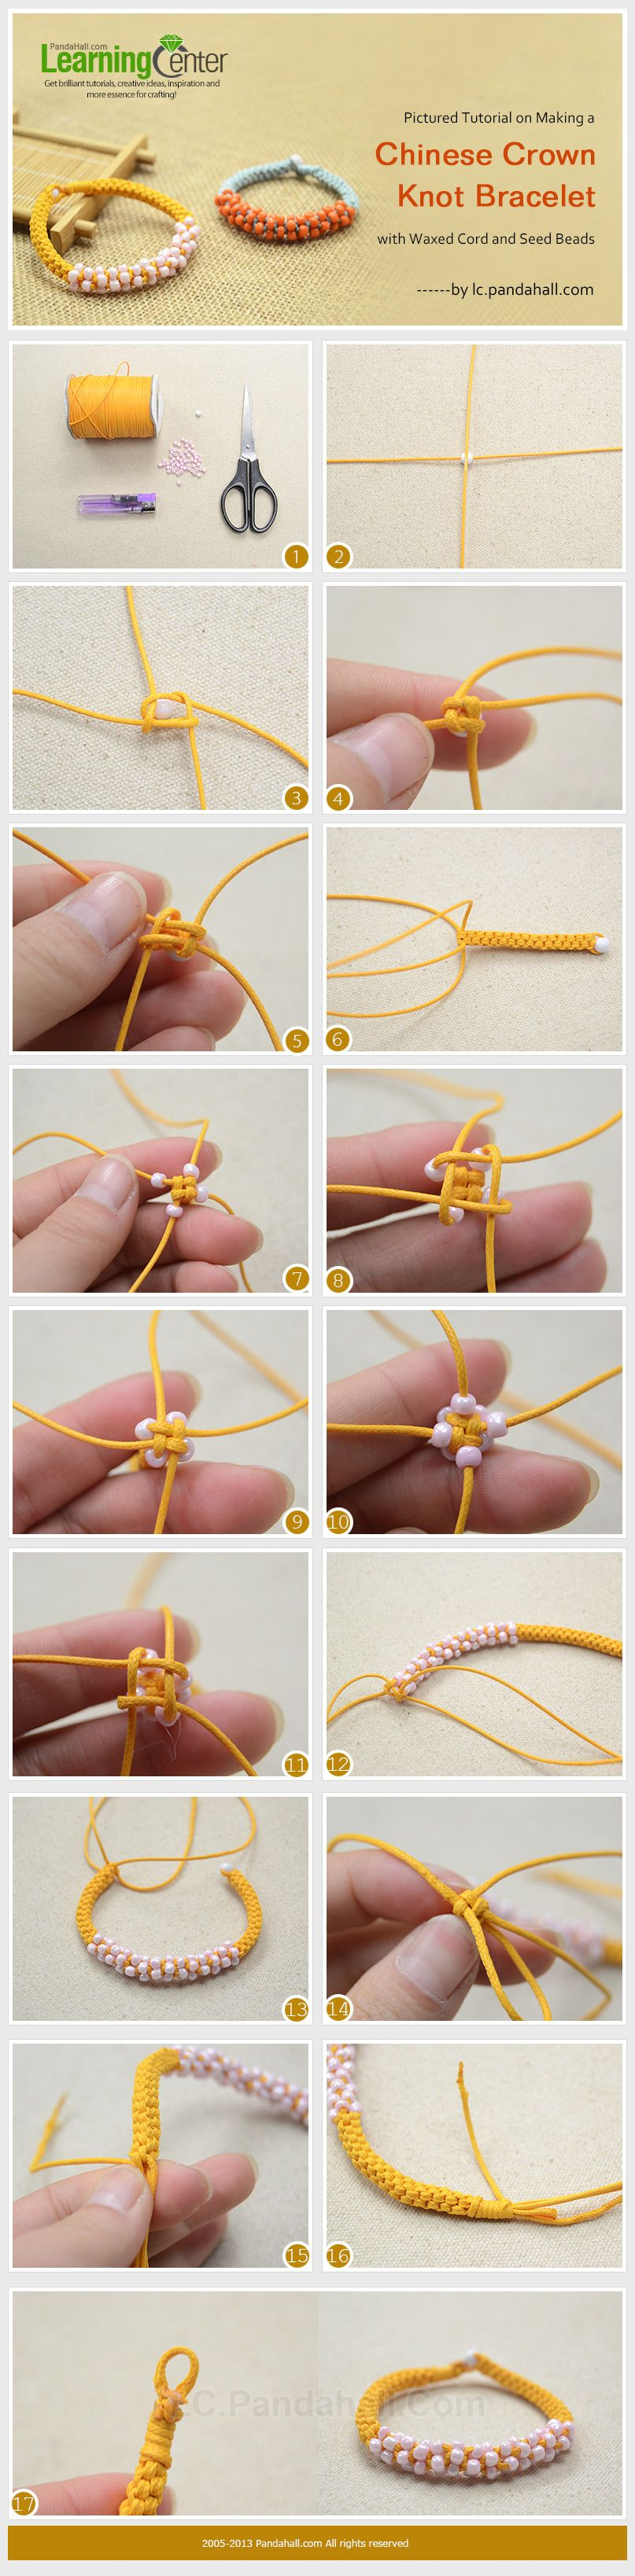 Pictured Tutorial on Making a Chinese Crown Knot Bracelet with Waxed Cord and Seed Beads